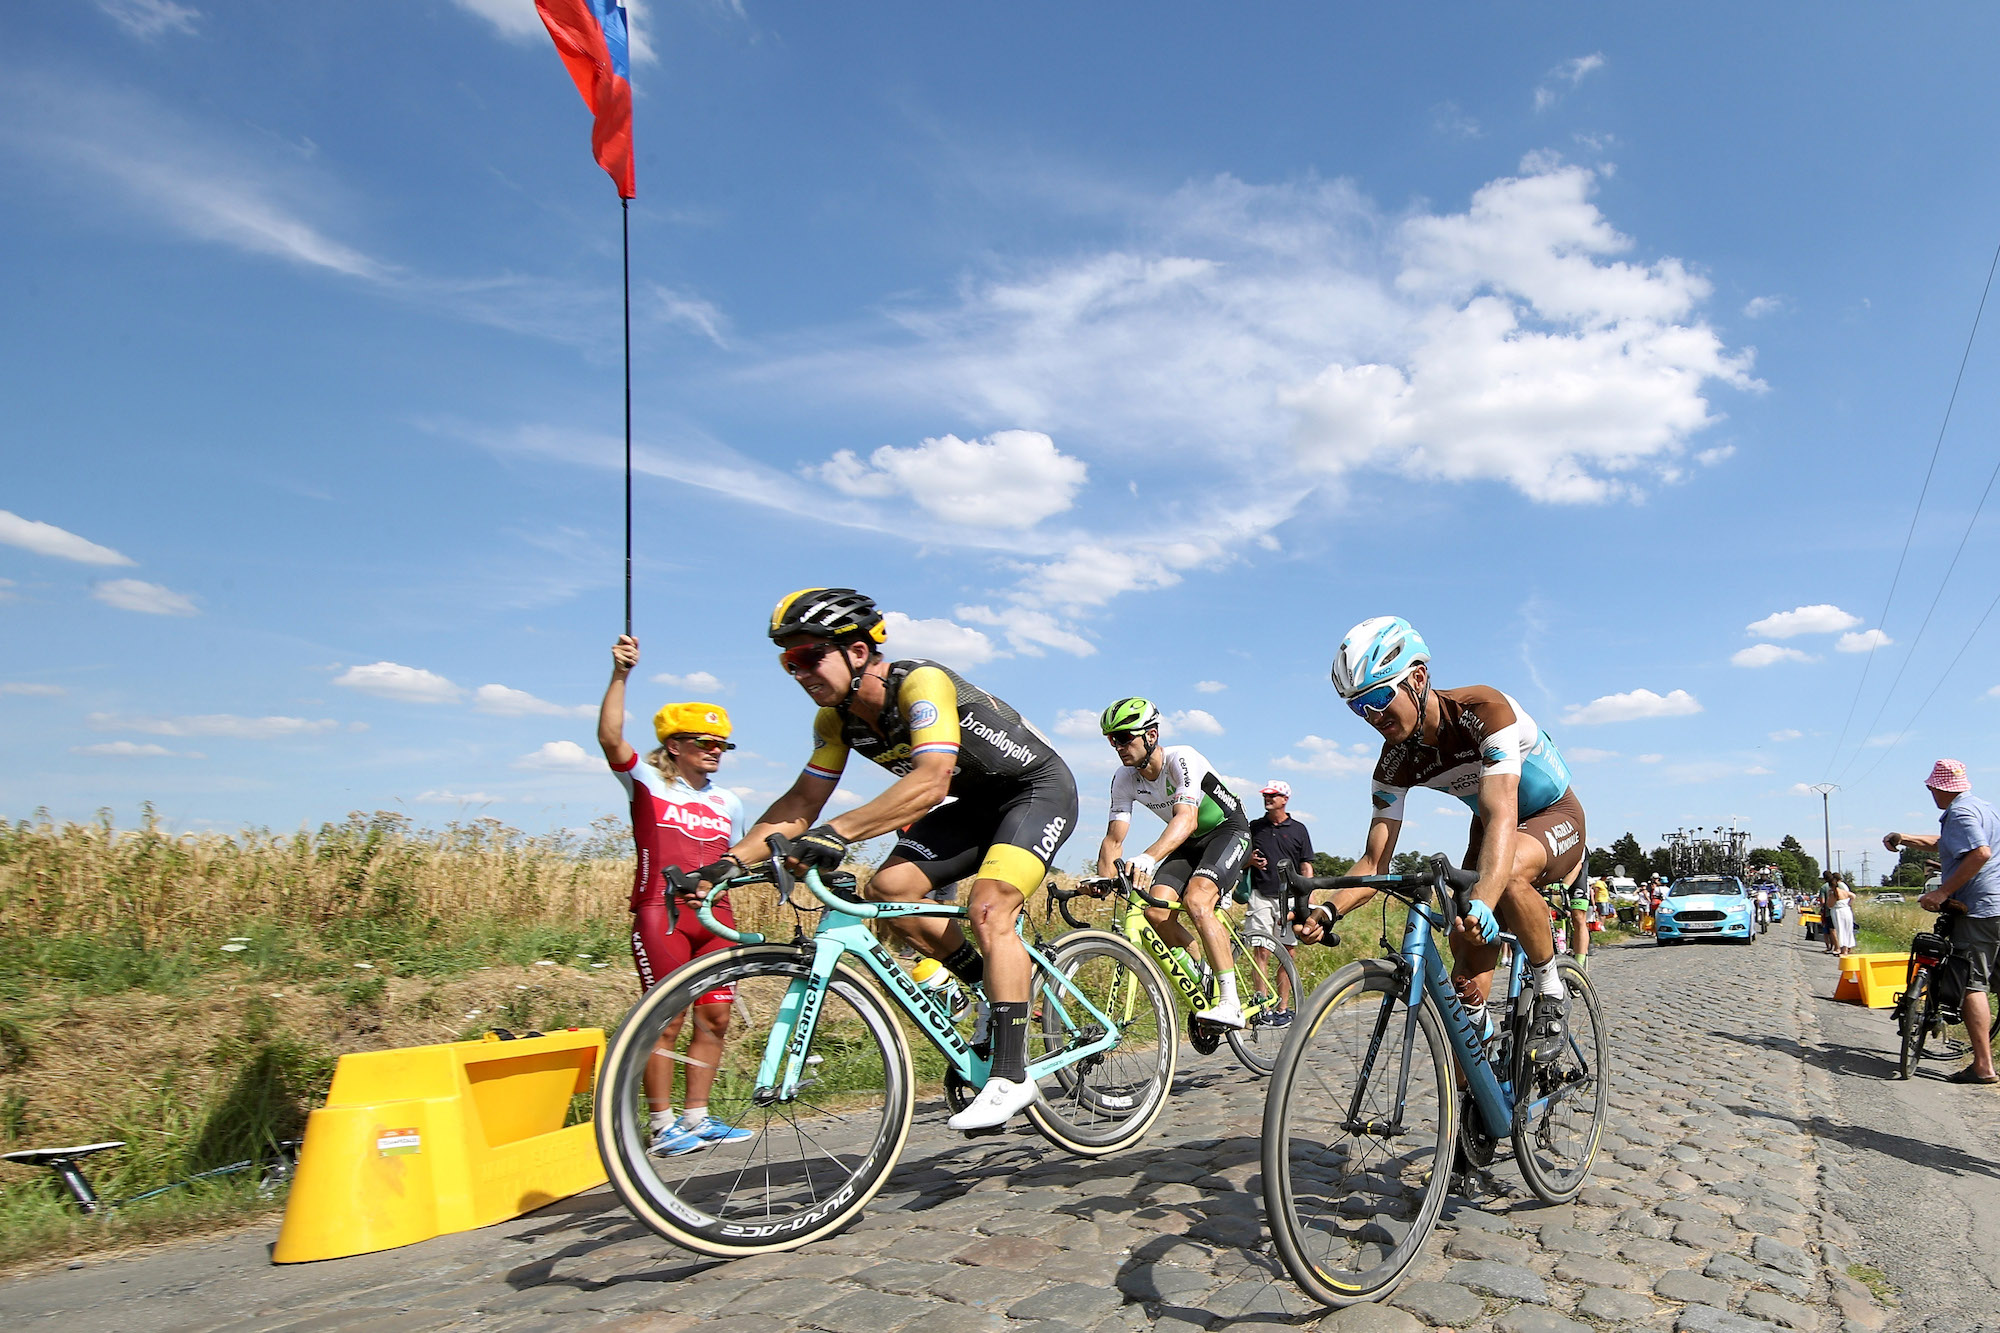 The penultimate Paris-Roubaix cobbled sector has been partially tarmacked